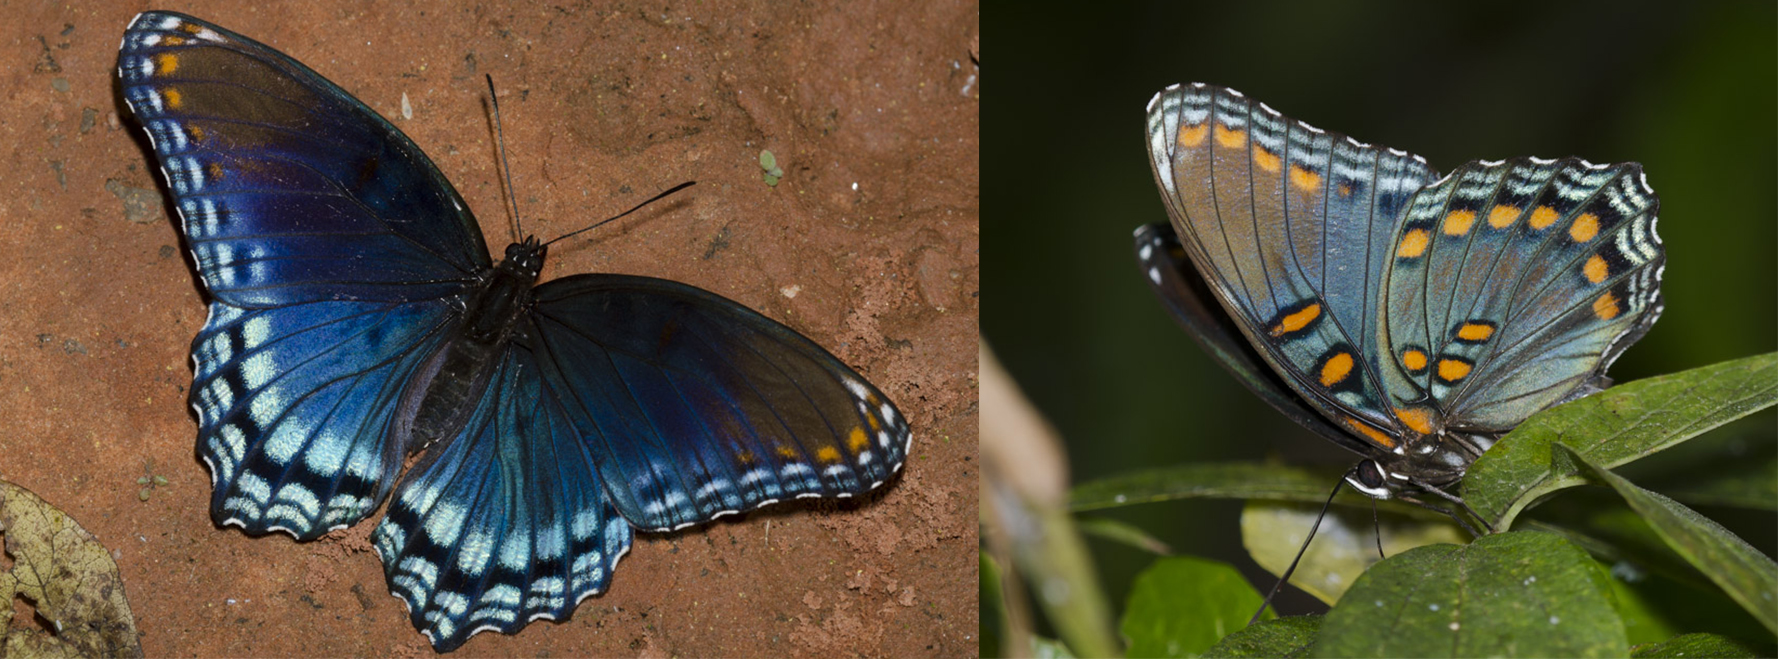 Dorsal and ventral views of the red-spotted purple butterfly are shown. The butterfly is a vivid blue, with some purple and orange patterning.